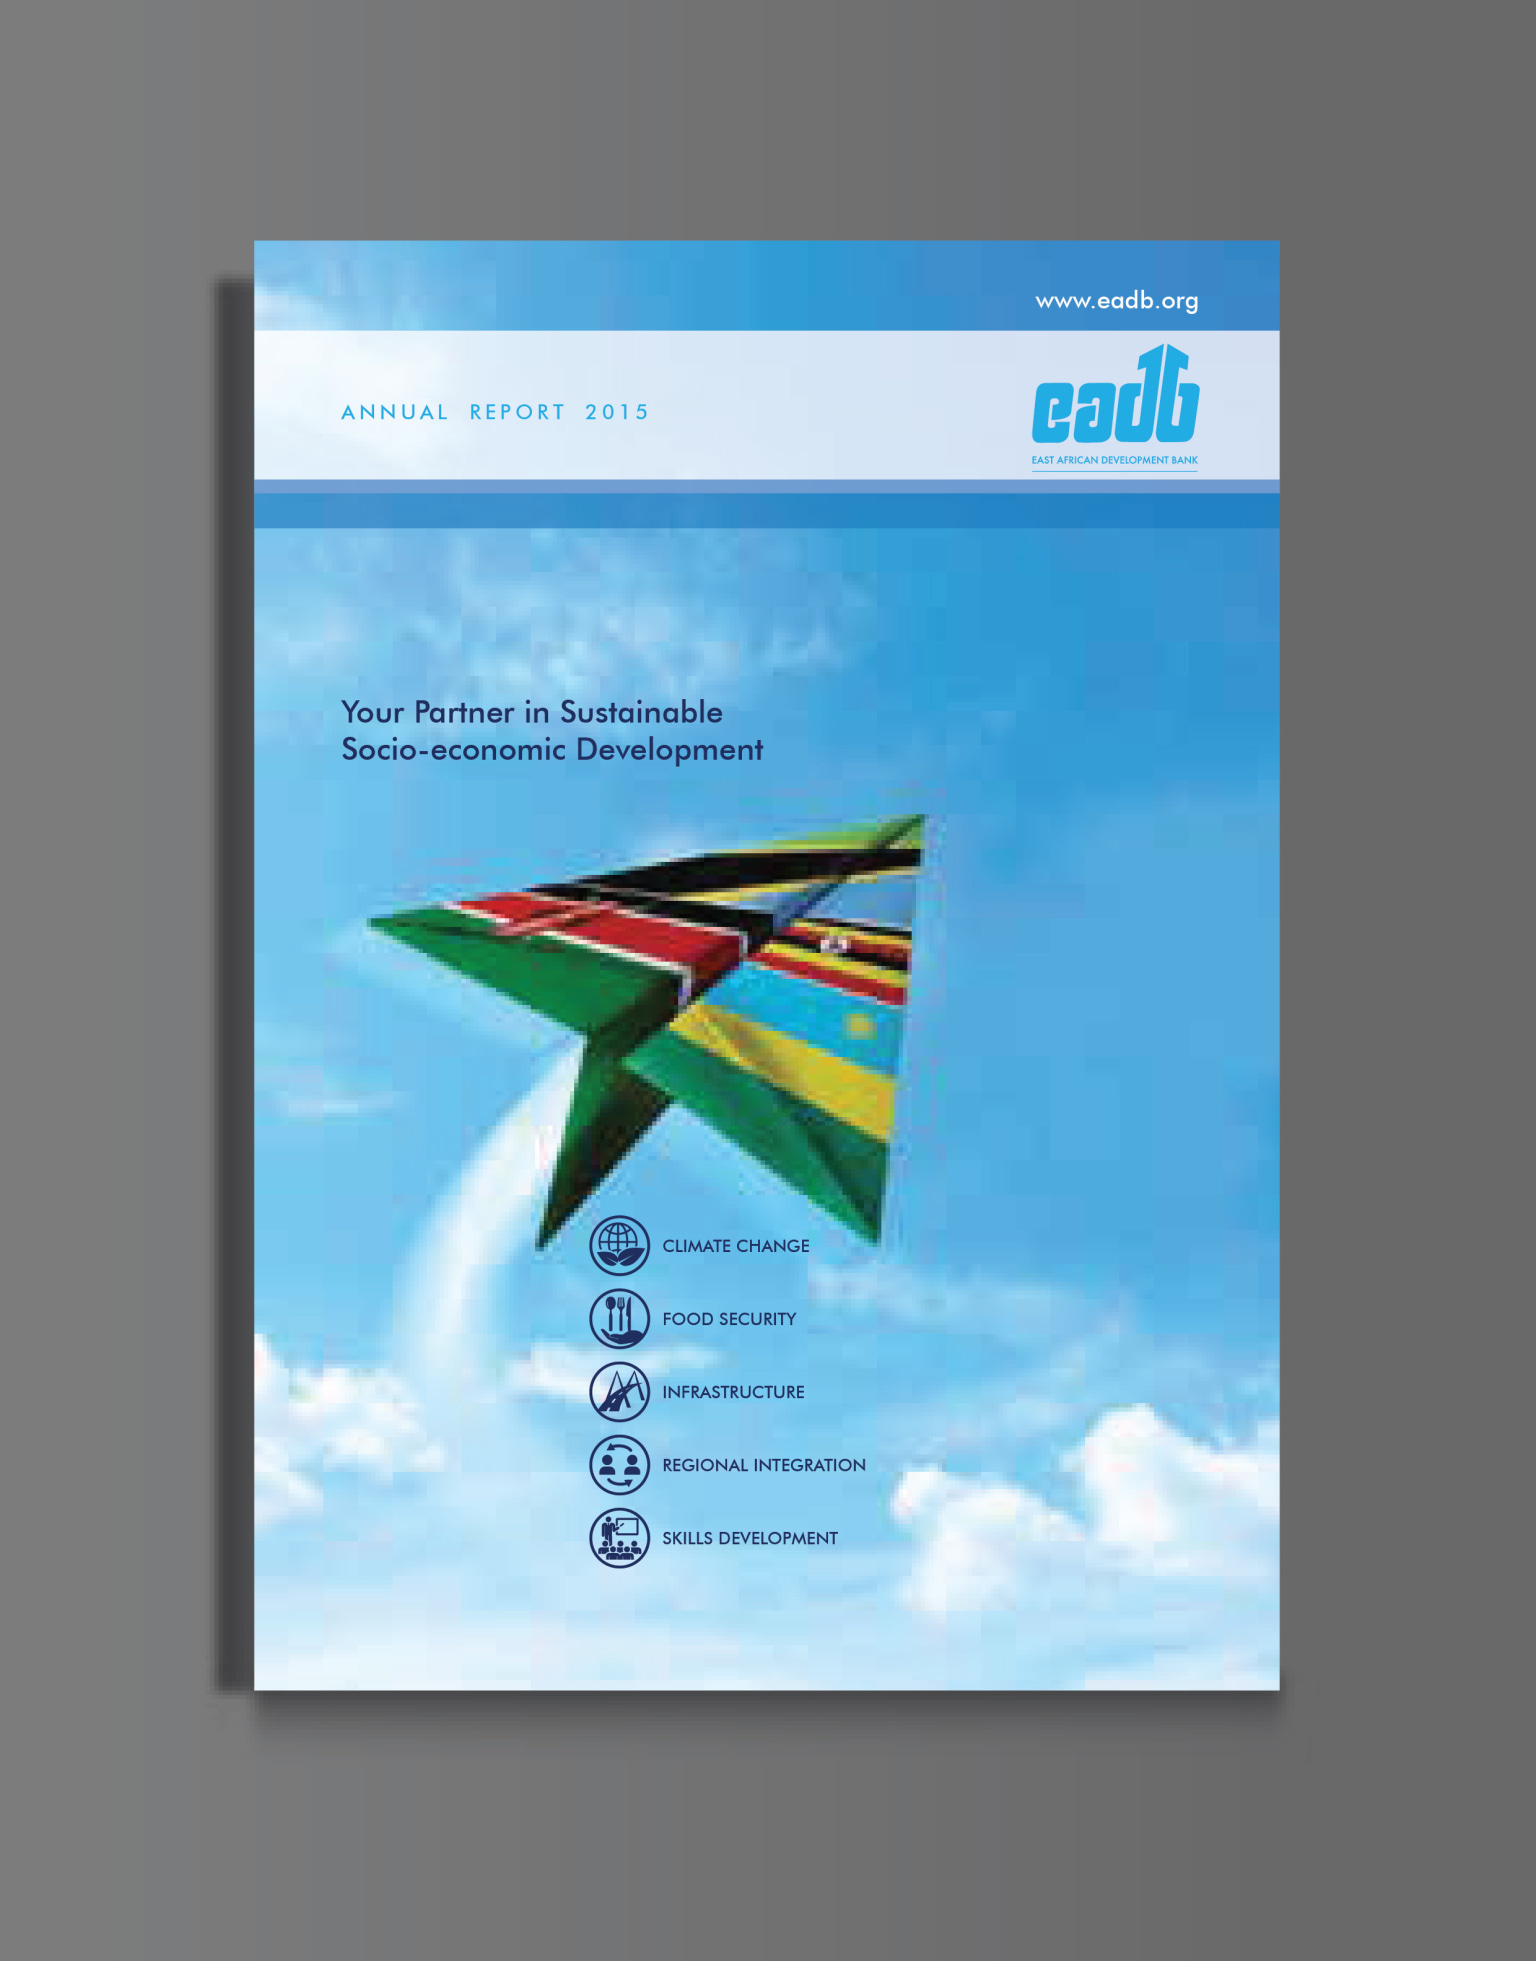 EADB Annual Report Design & Layout